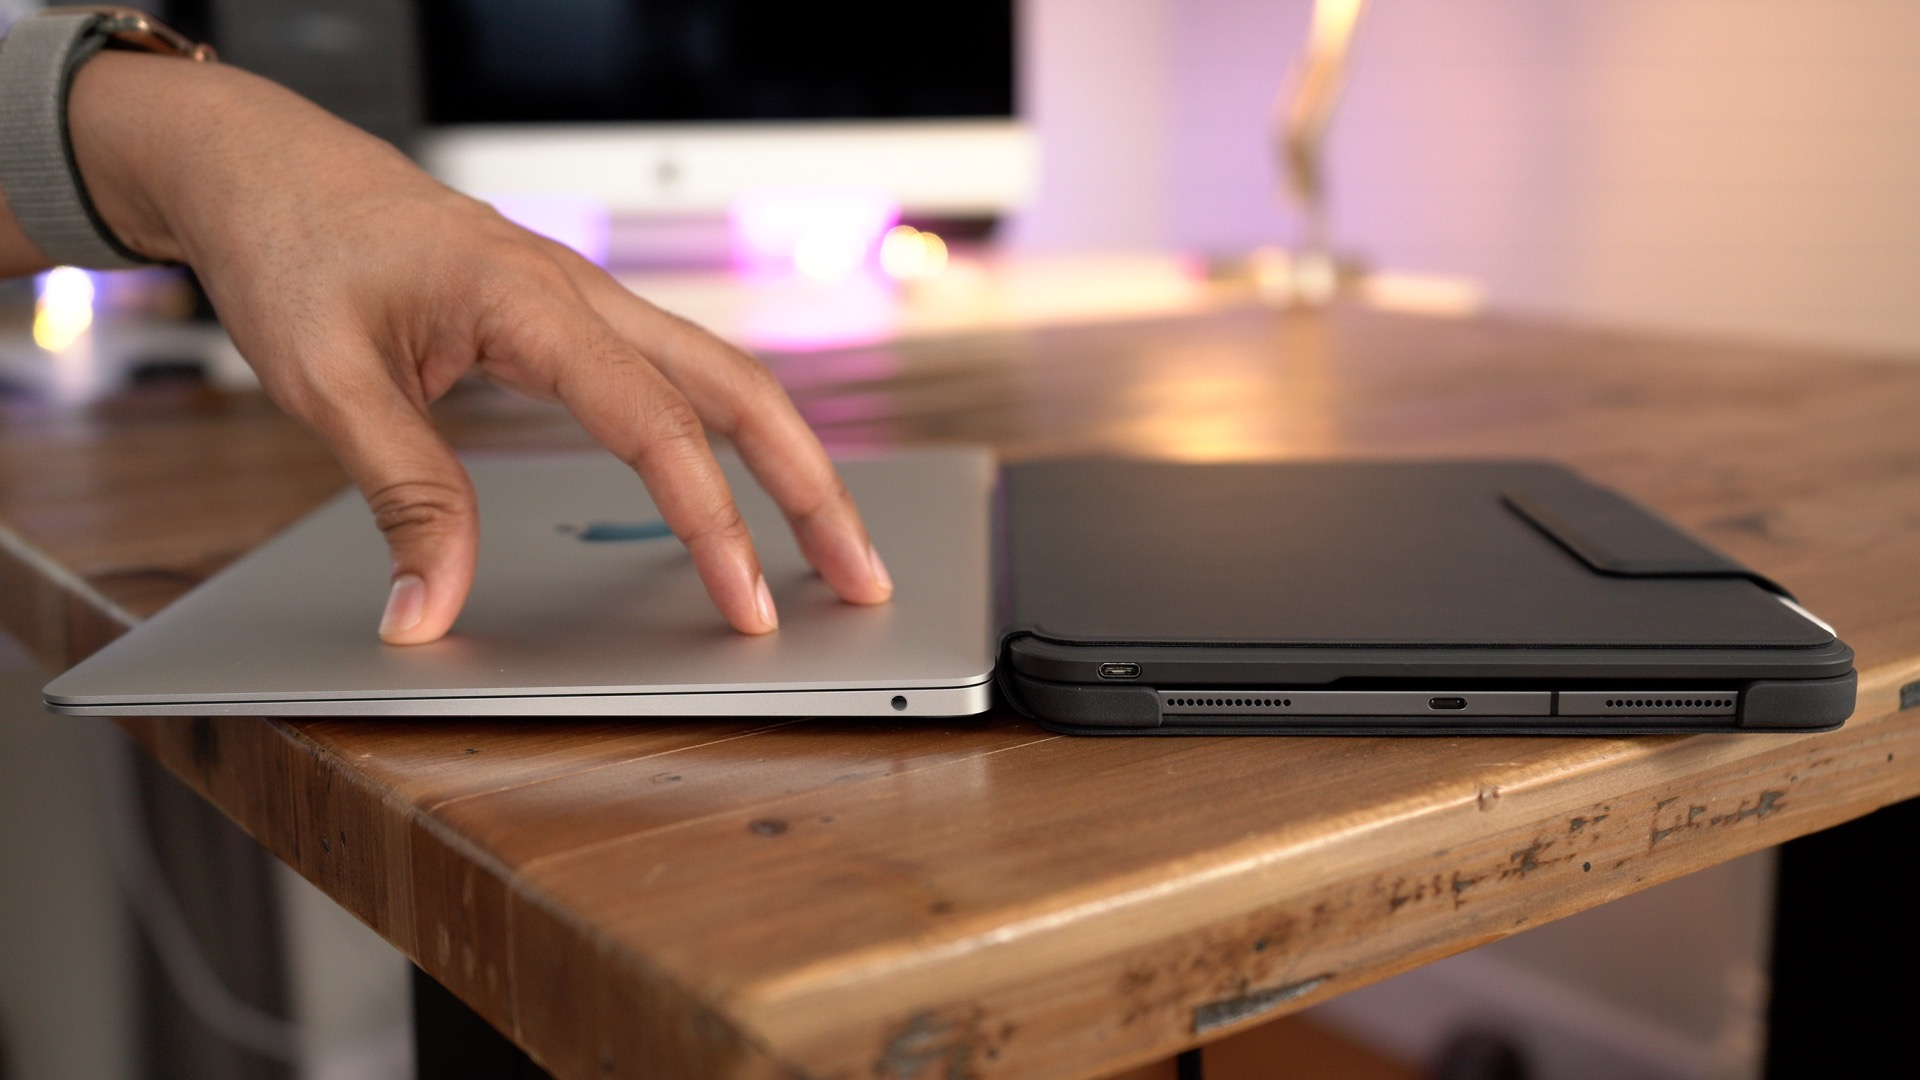 Logitech Slim Folio Pro vs MacBook Air